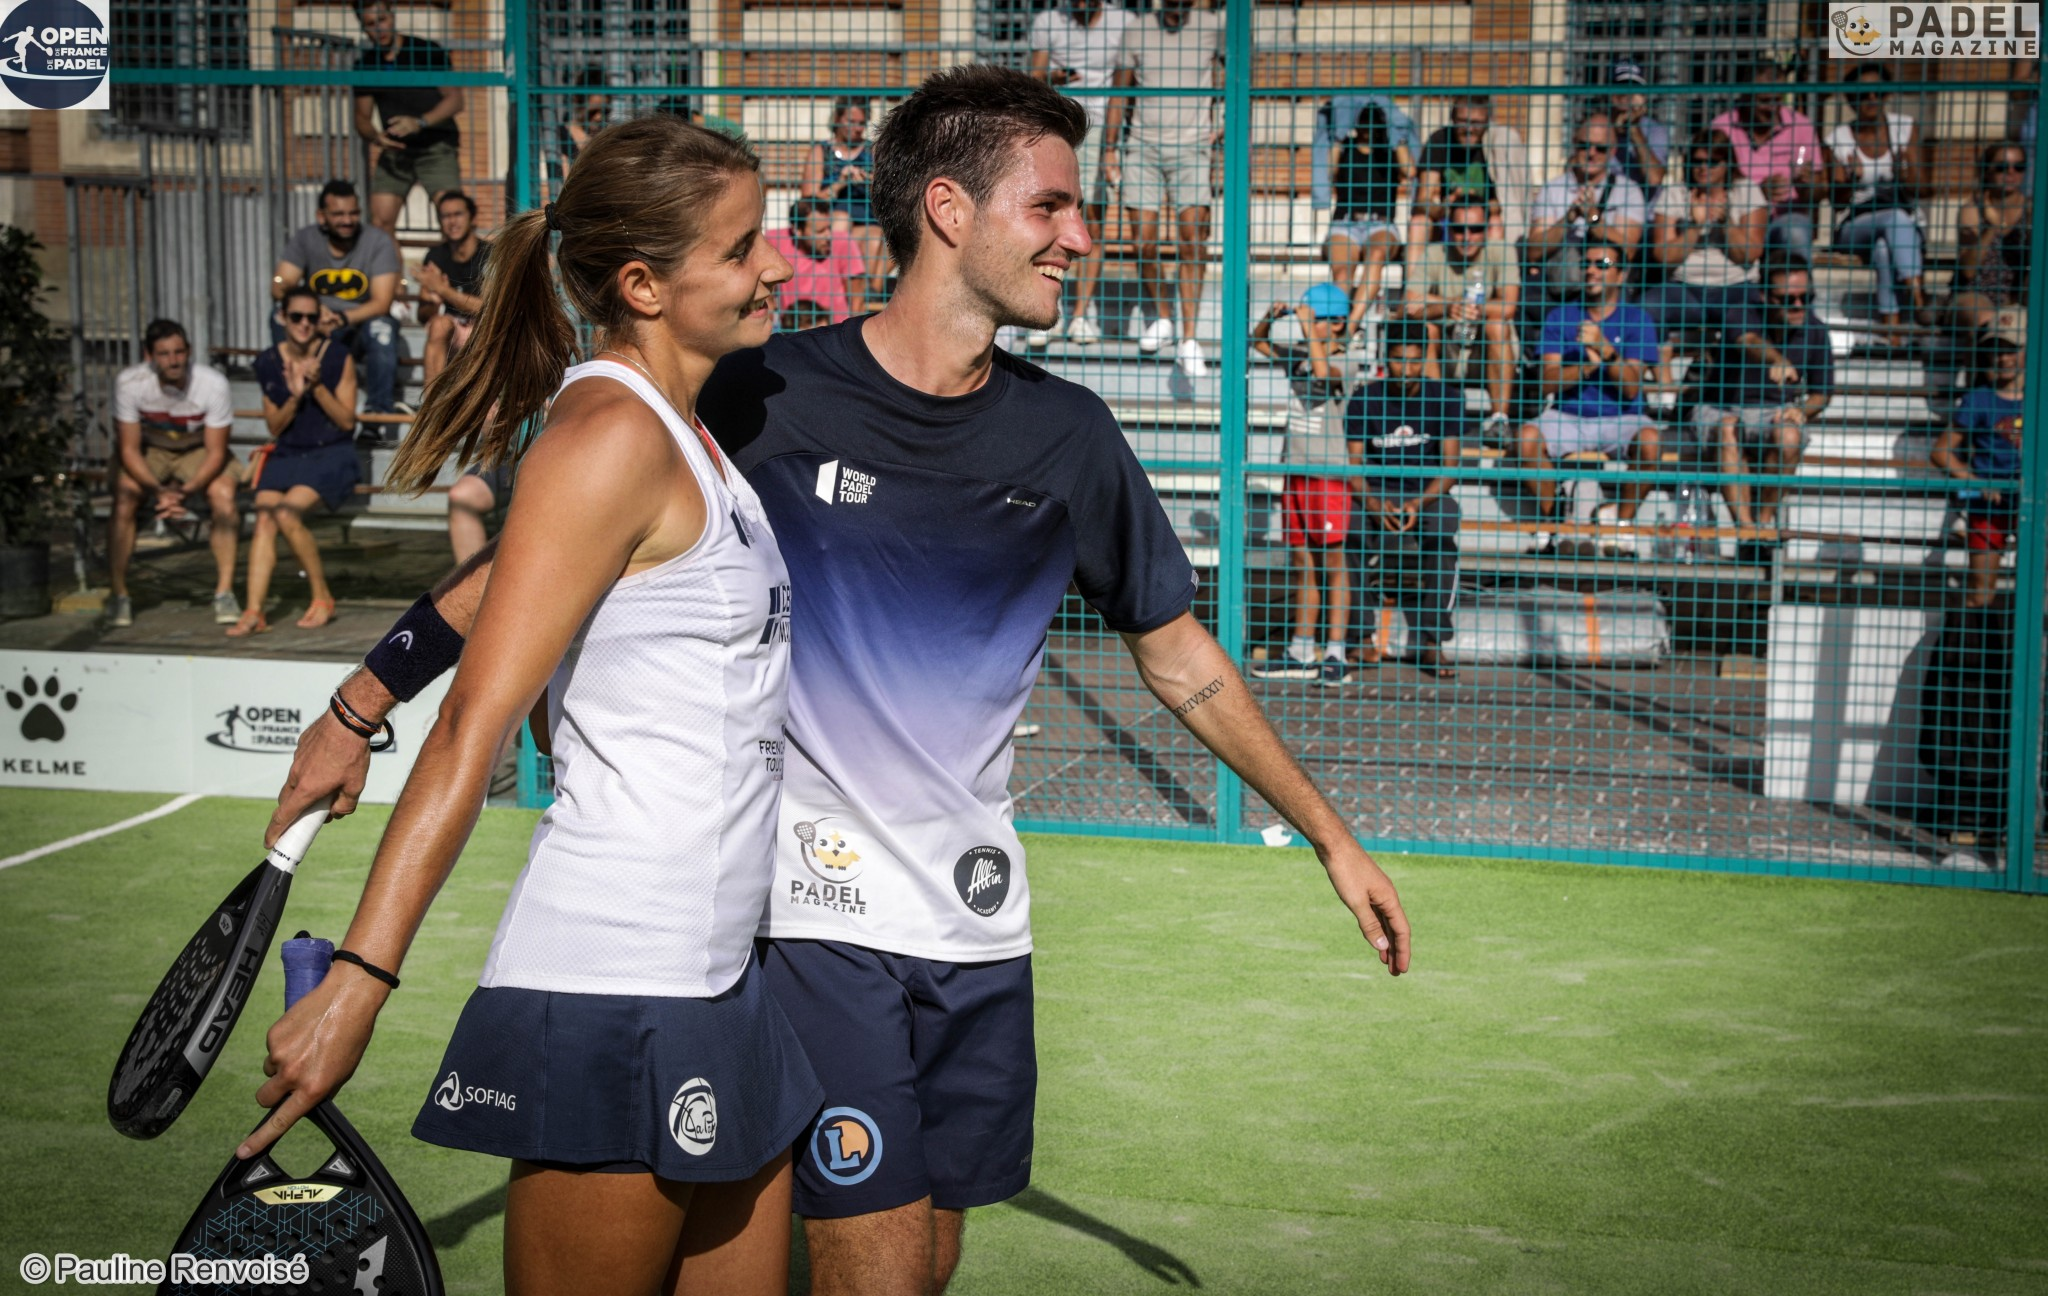 Collombon / Bergeron: The Padel Open de France, un evento increíble